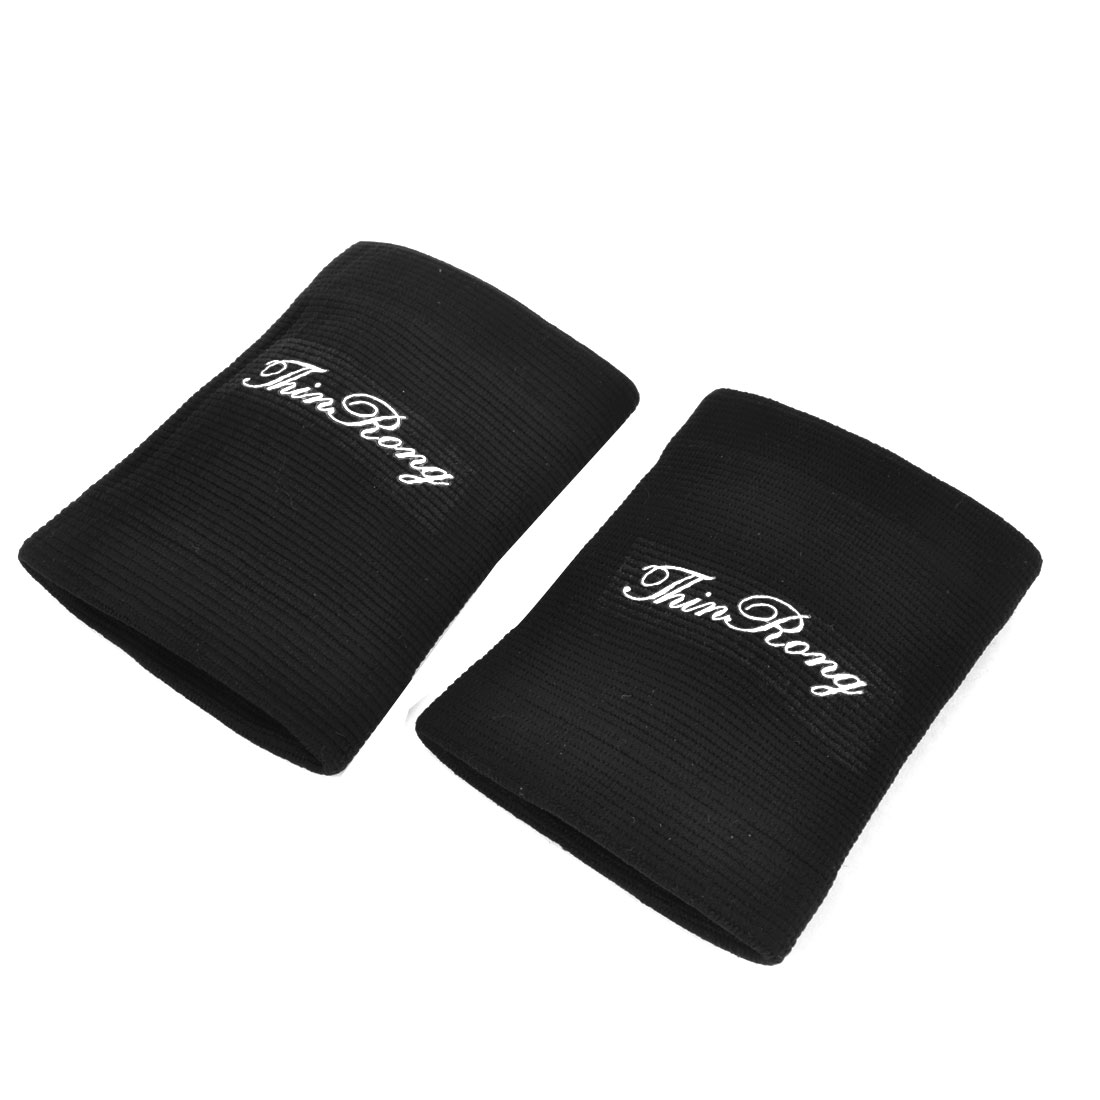 Pair Outdoor Sports Pullover Design Wrist Support Guard Black